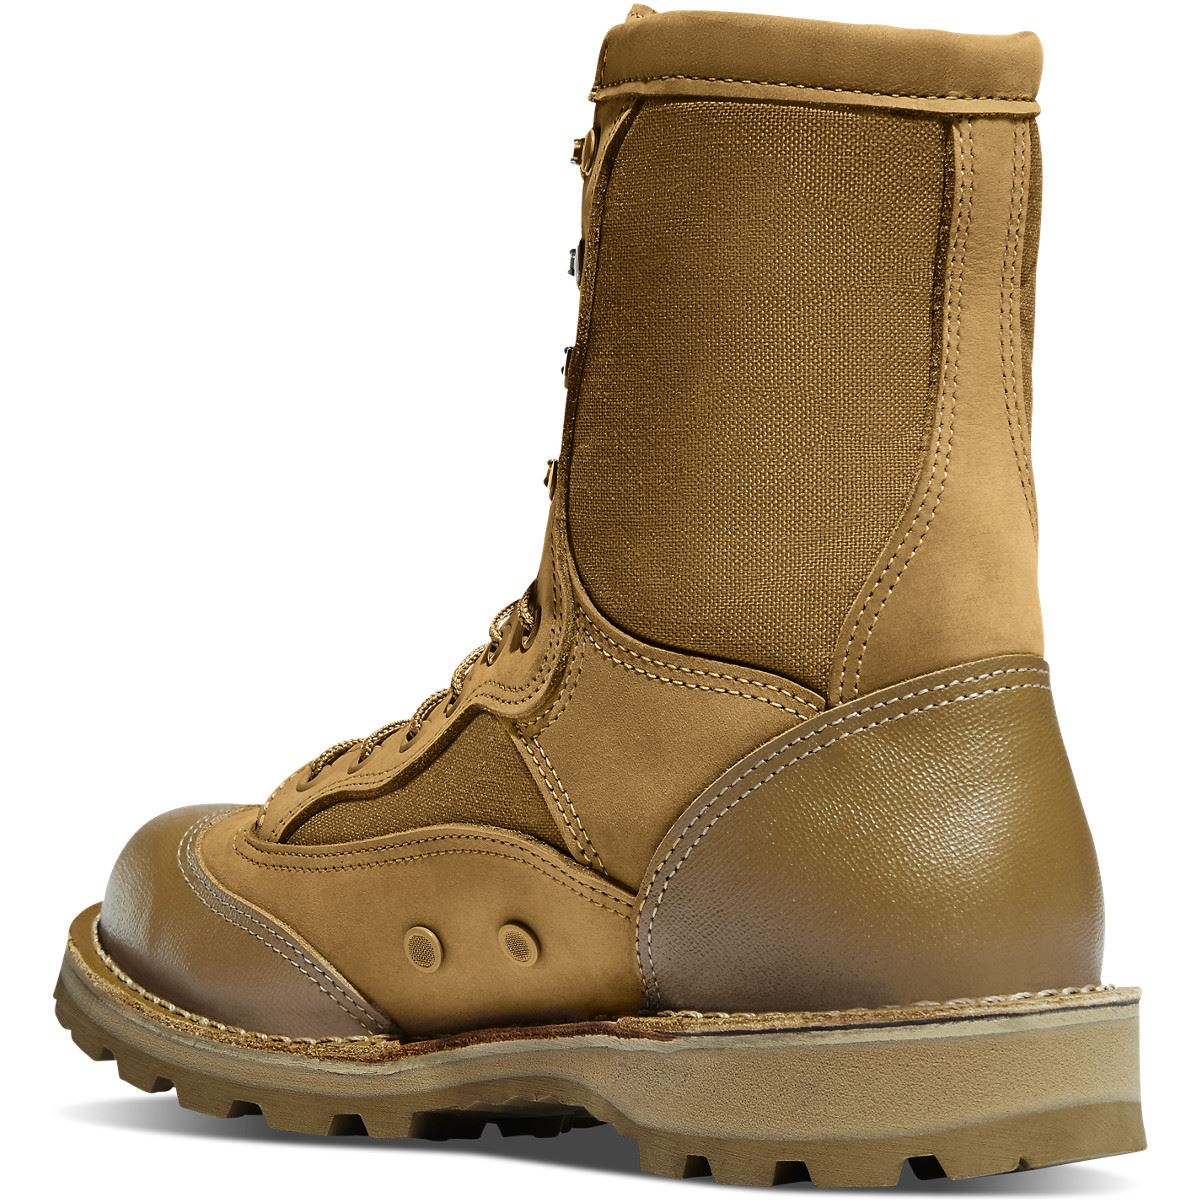 If you got to the Danner factory store, first buy a Chinook book. It's a coupon book that has a coupon for 20% off USA made Danner boots. Sometimes they will let you use this coupon on seconds.